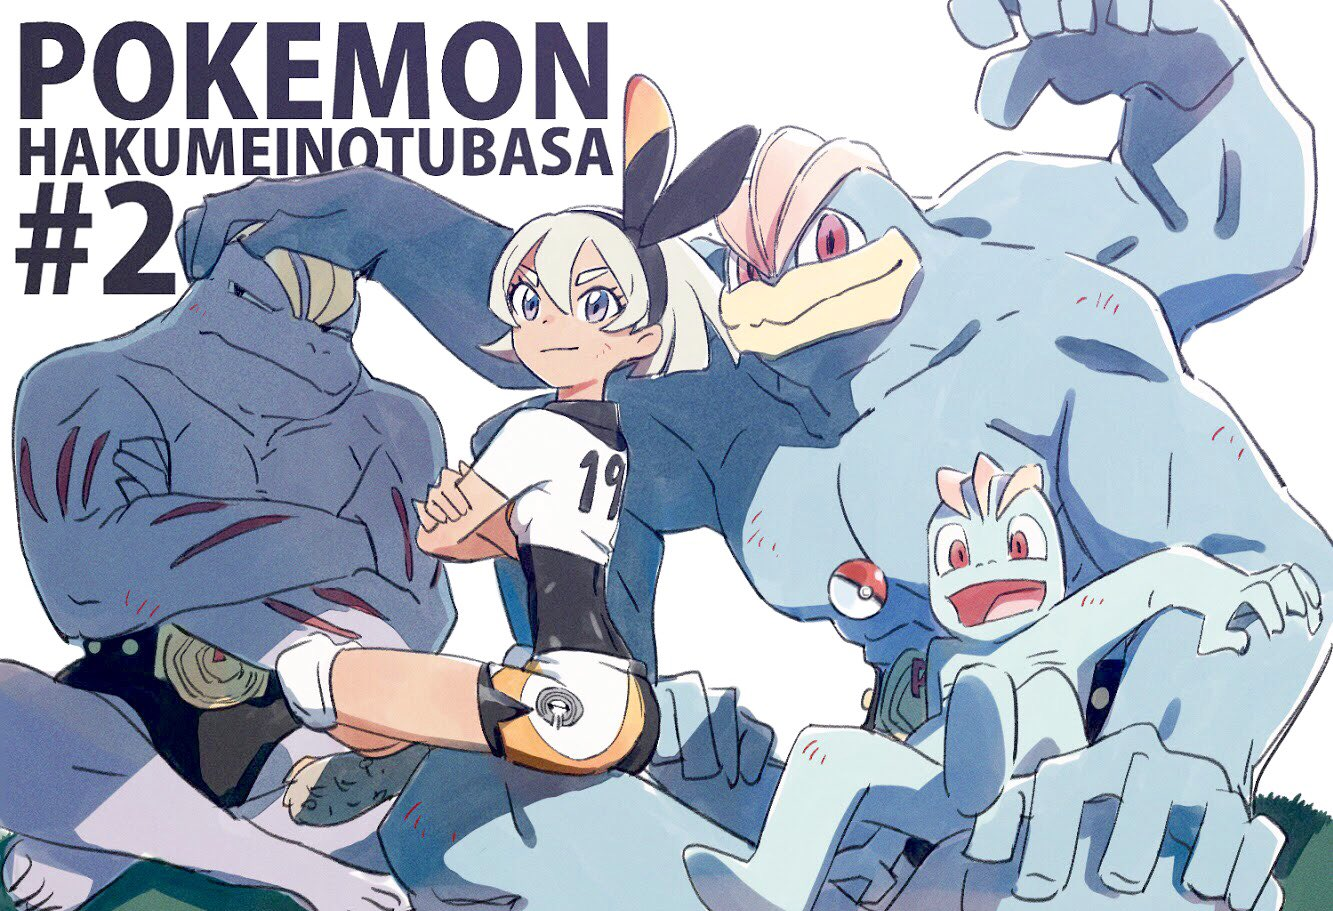 Pokemon Twilight Wings Second Episode Director Shares Special Artwork Of Bea And Her Pokemon   NintendoSoup